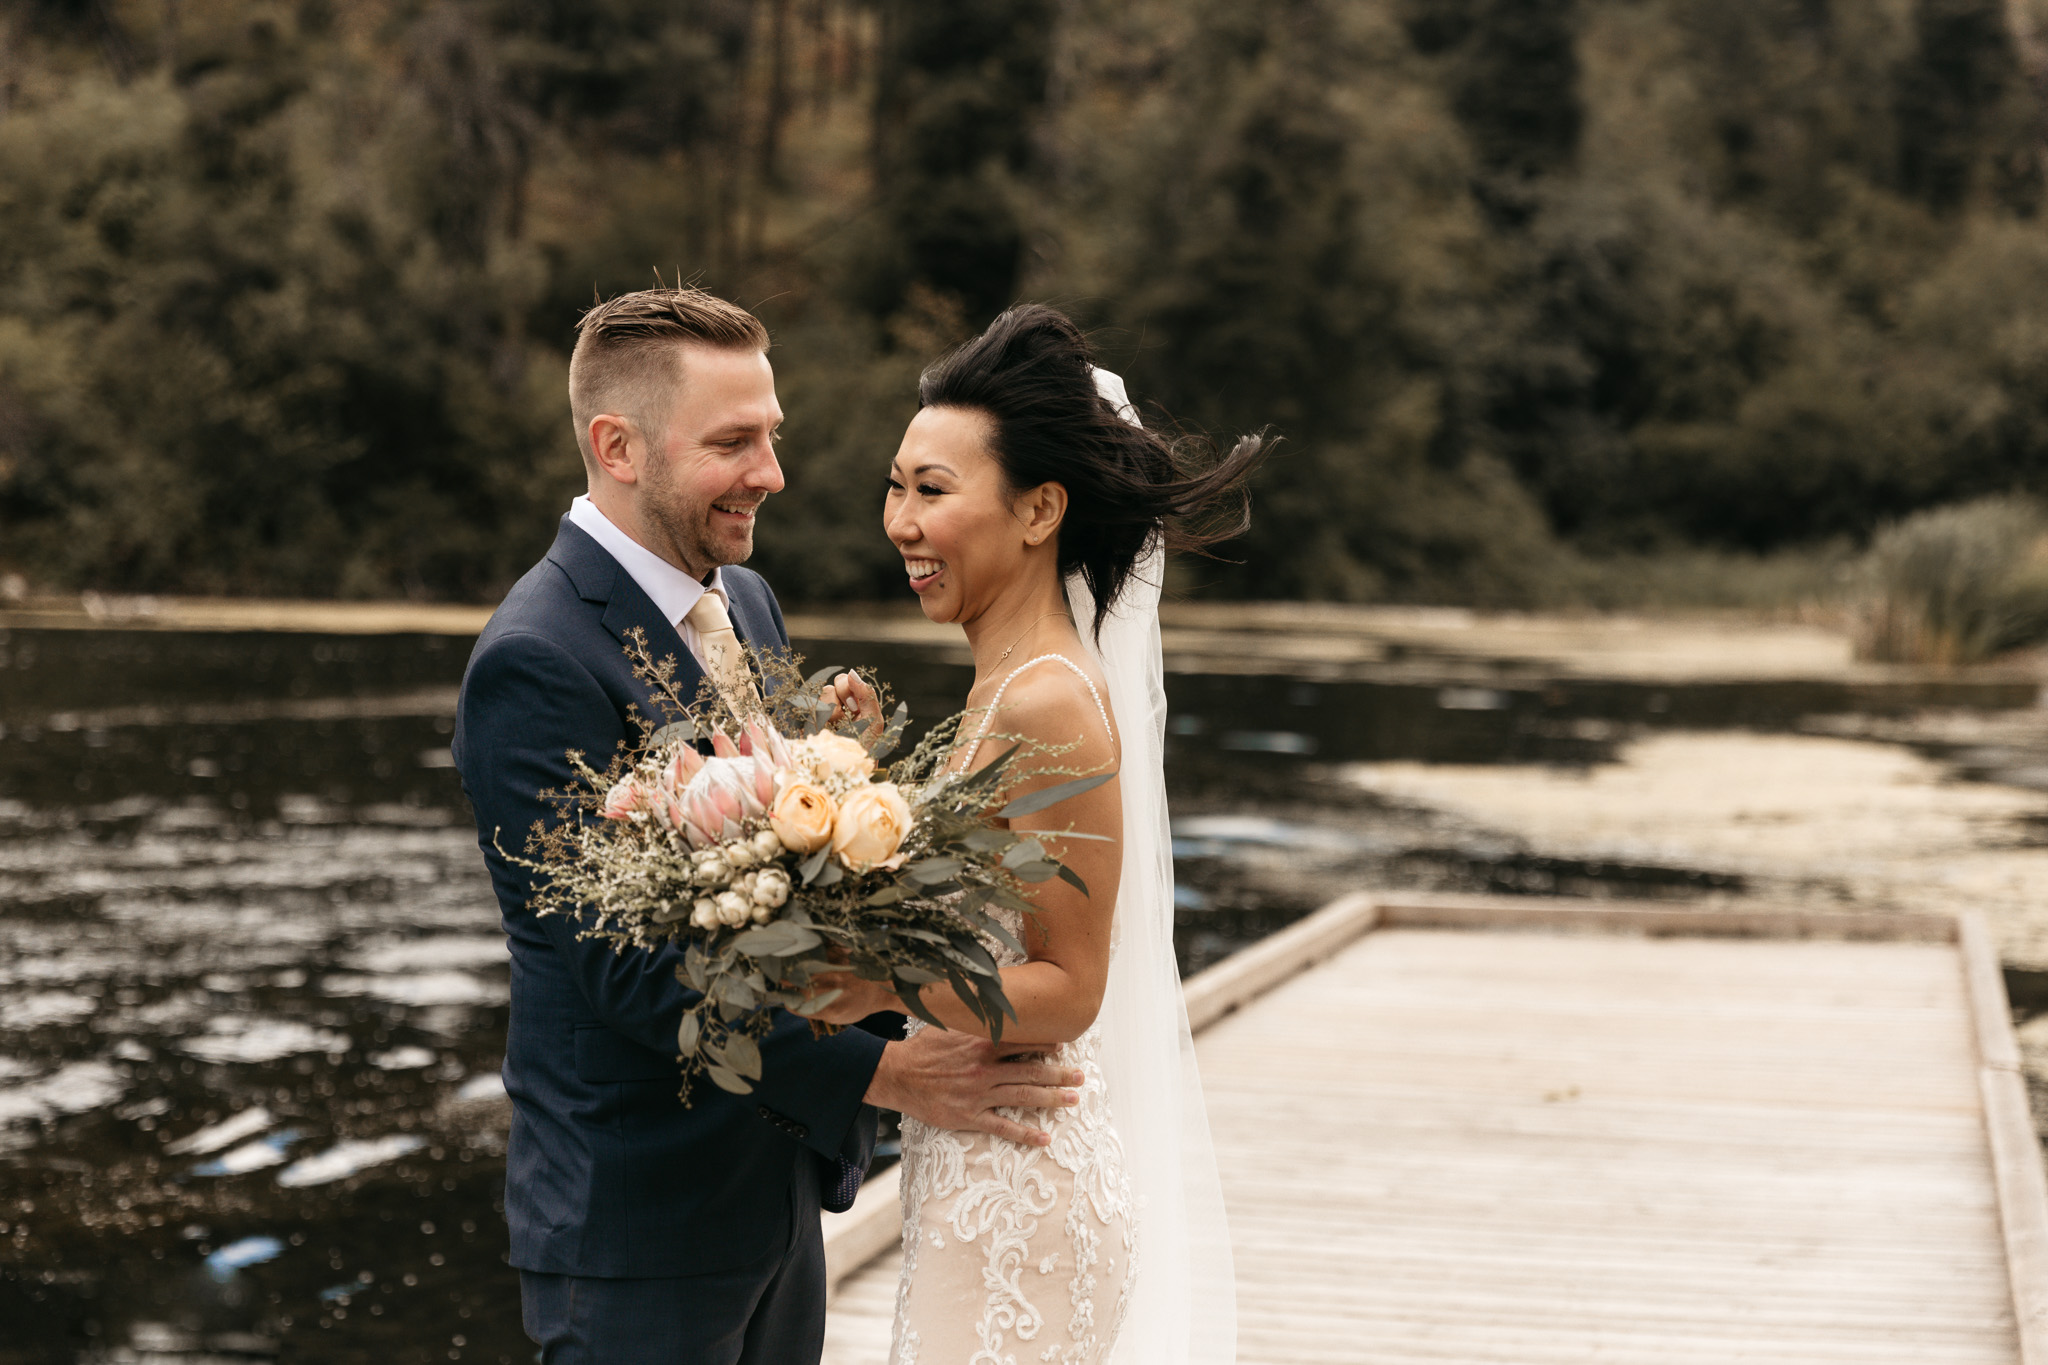 Grist Mill Wedding in Naramatta with photoshoot on the lake in the forest